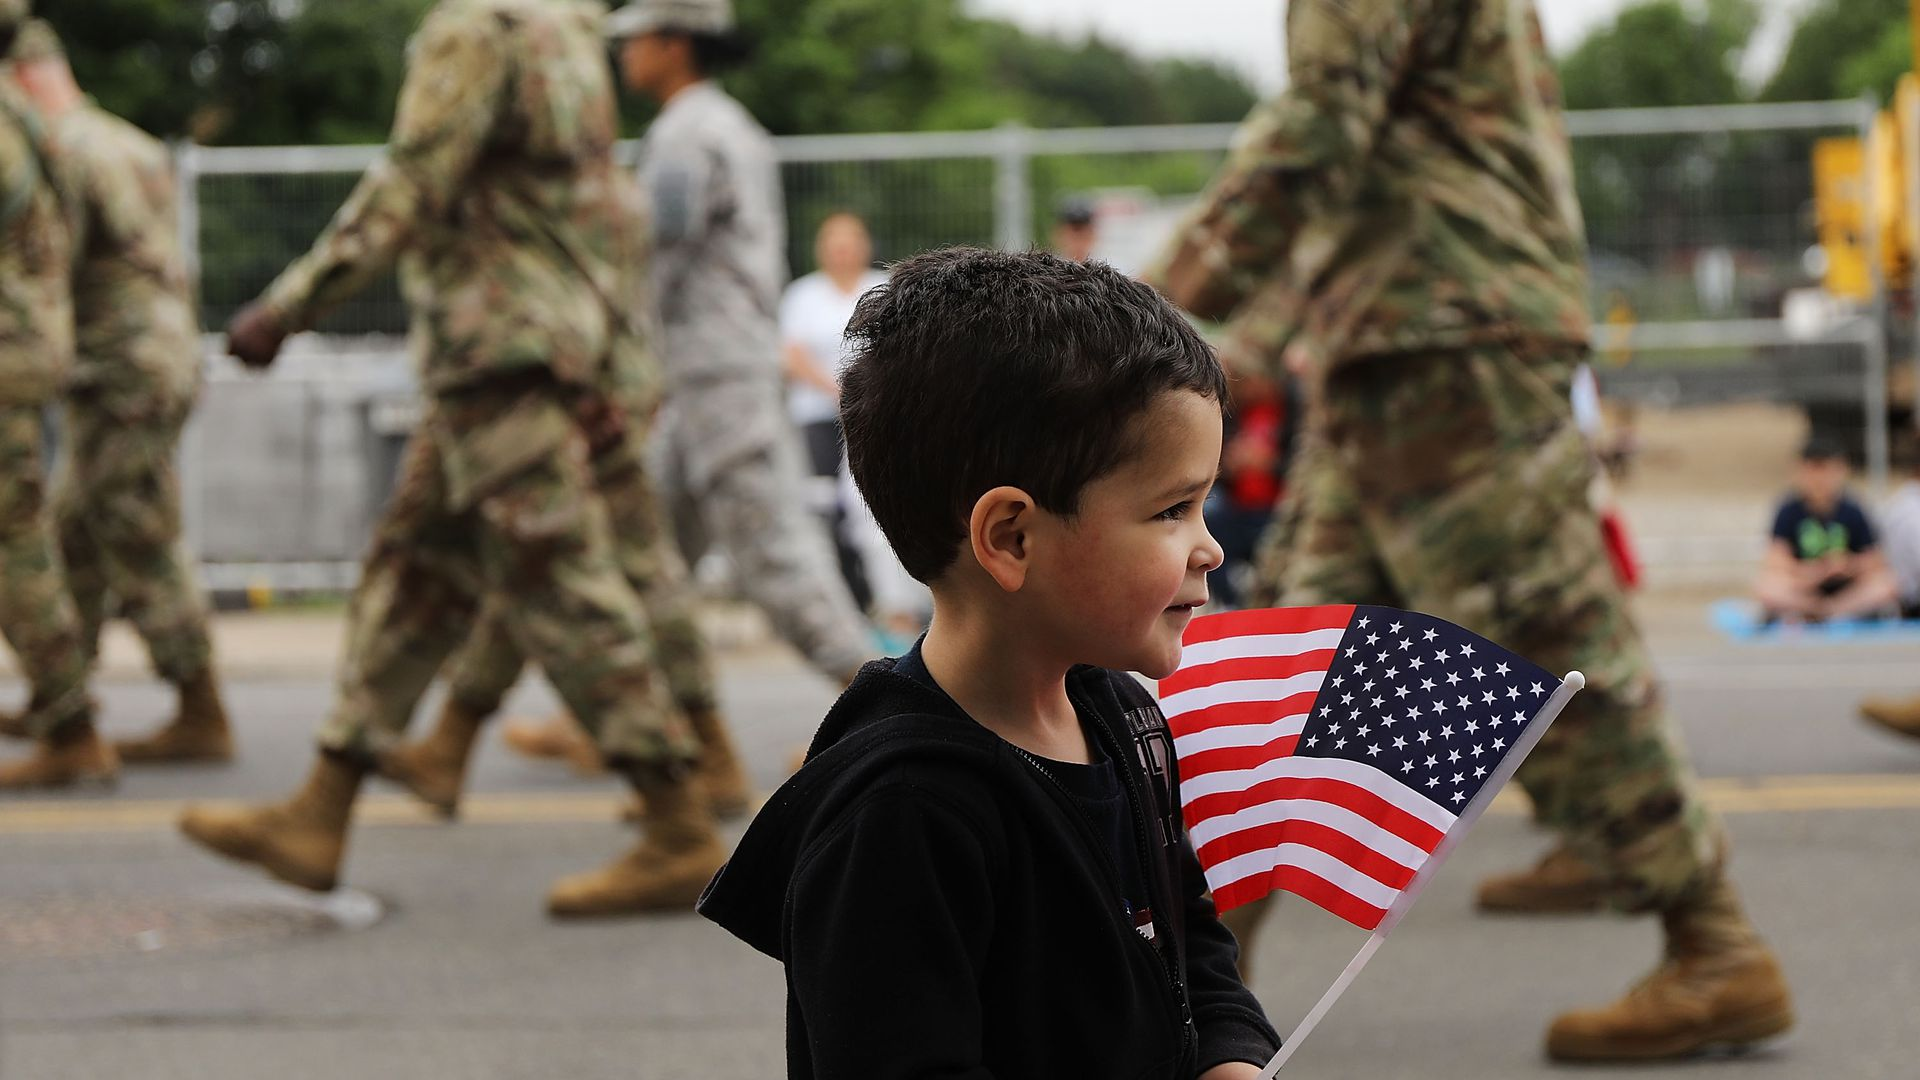 A child holding an American flag while U.S. soldiers walk by.